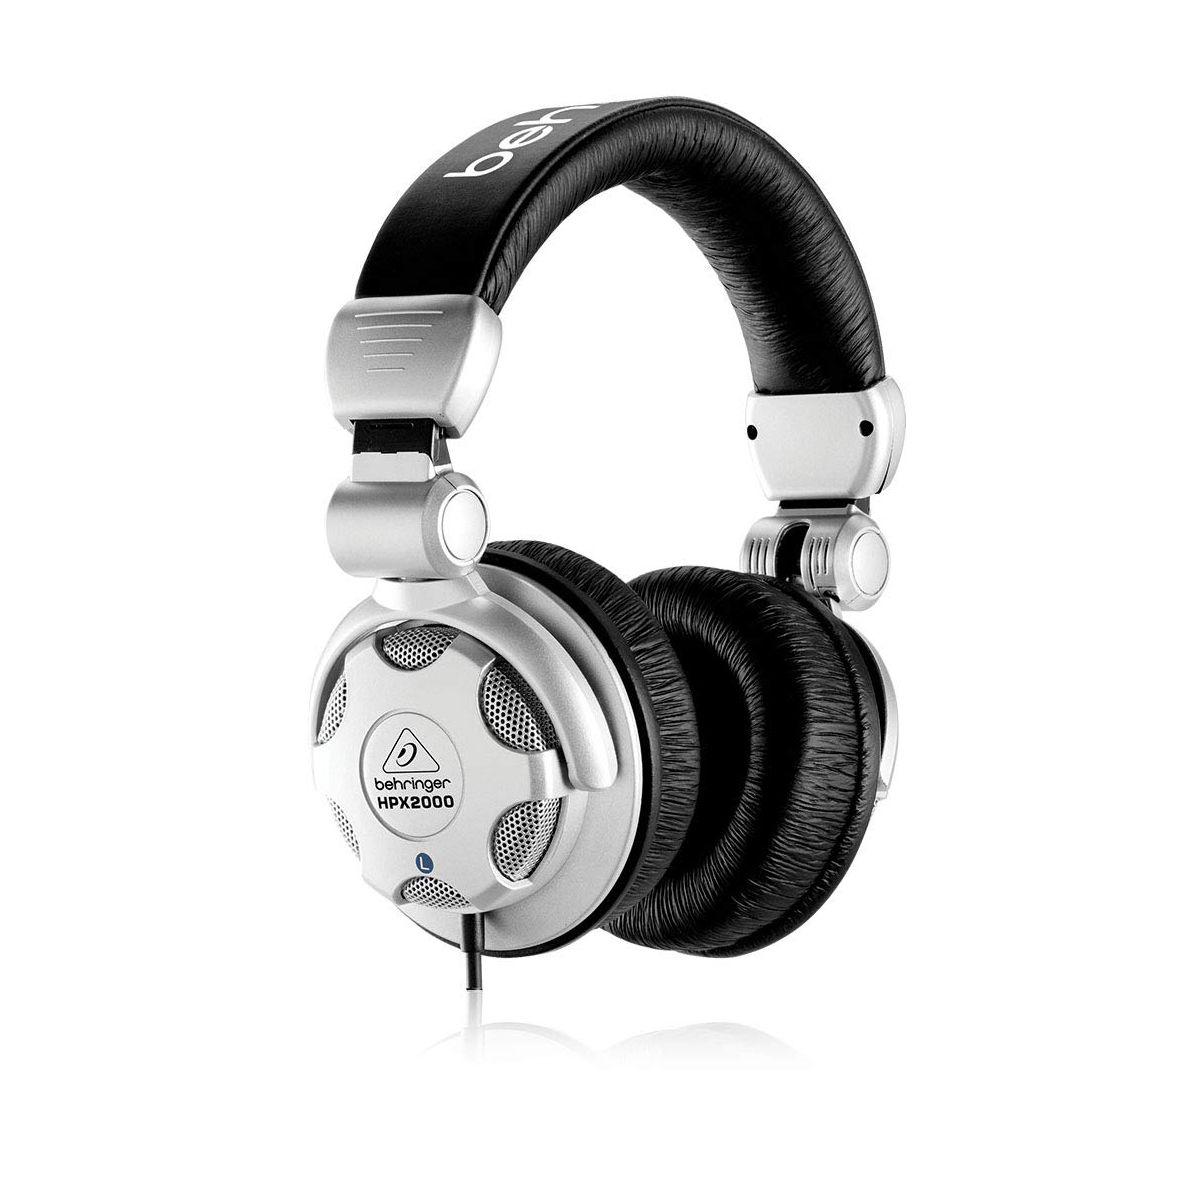 Fone de Ouvido Behringer HPX2000 High Definition Over Ear